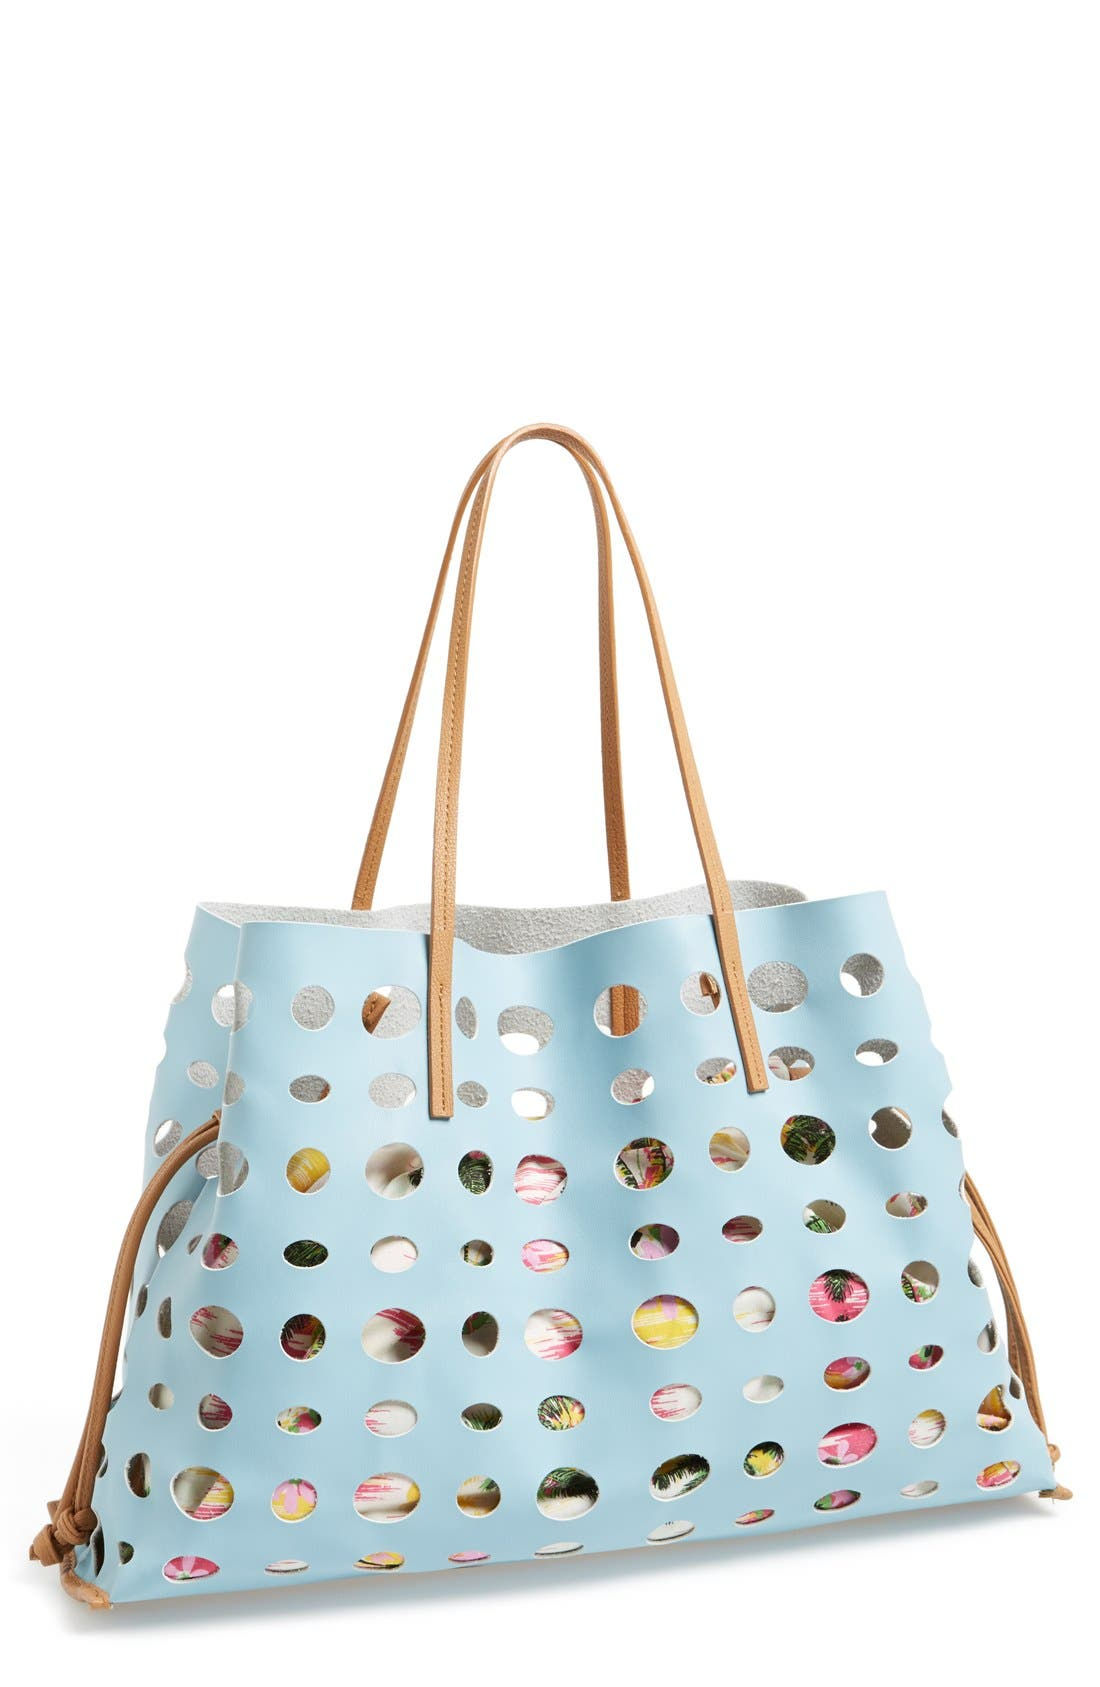 Alternate Image 1 Selected - POVERTY FLATS by rian 'Large' Perforated Faux Leather Tote